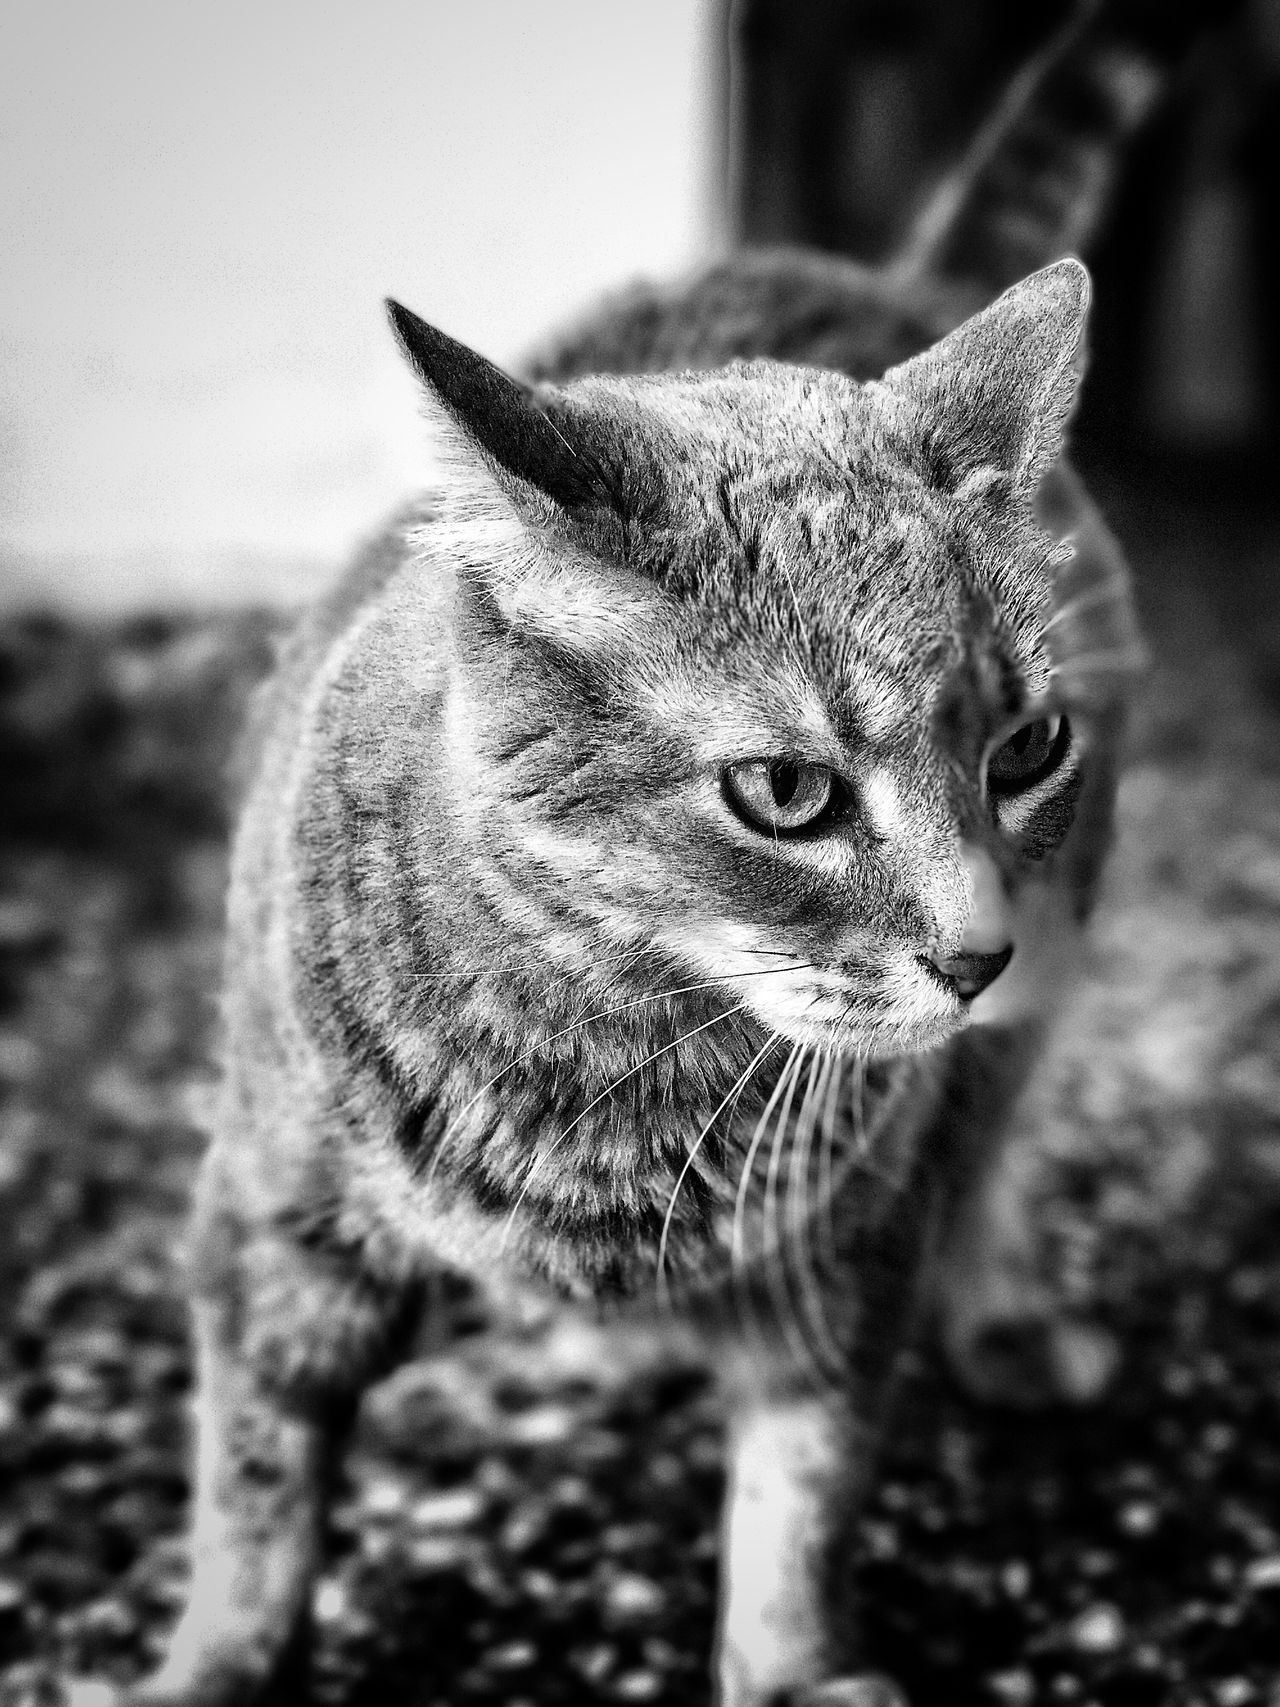 Domestic Cat Domestic Animals One Animal Pets Animal Themes Mammal Feline No People Close-up Nature Day Outdoors Black And White Photography Blsckandwhite Black & White Blackandwhite Black And White